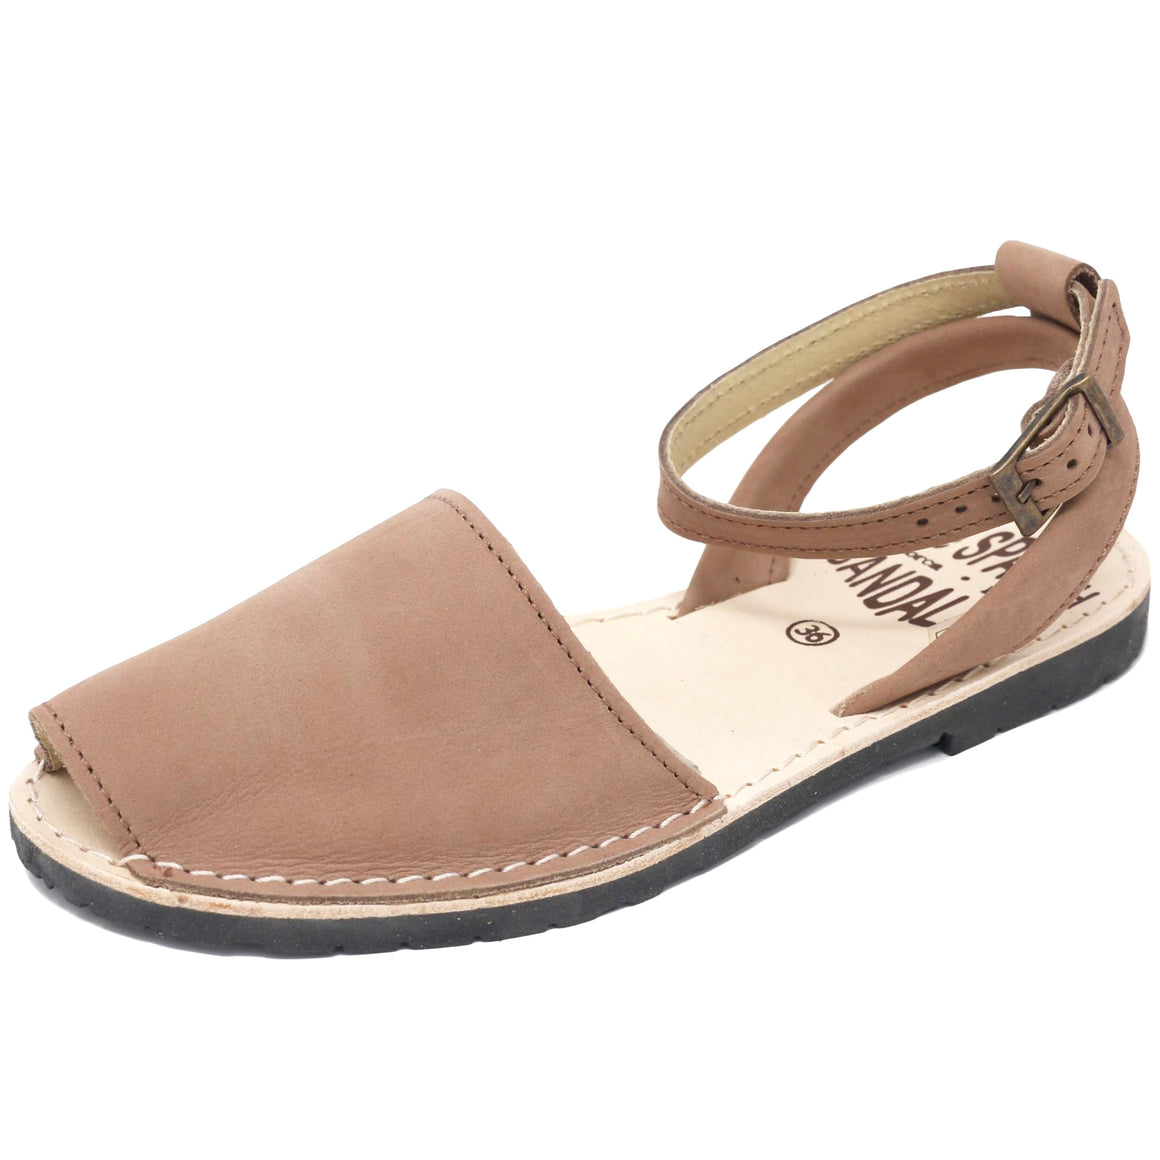 Tan nubuck with strap